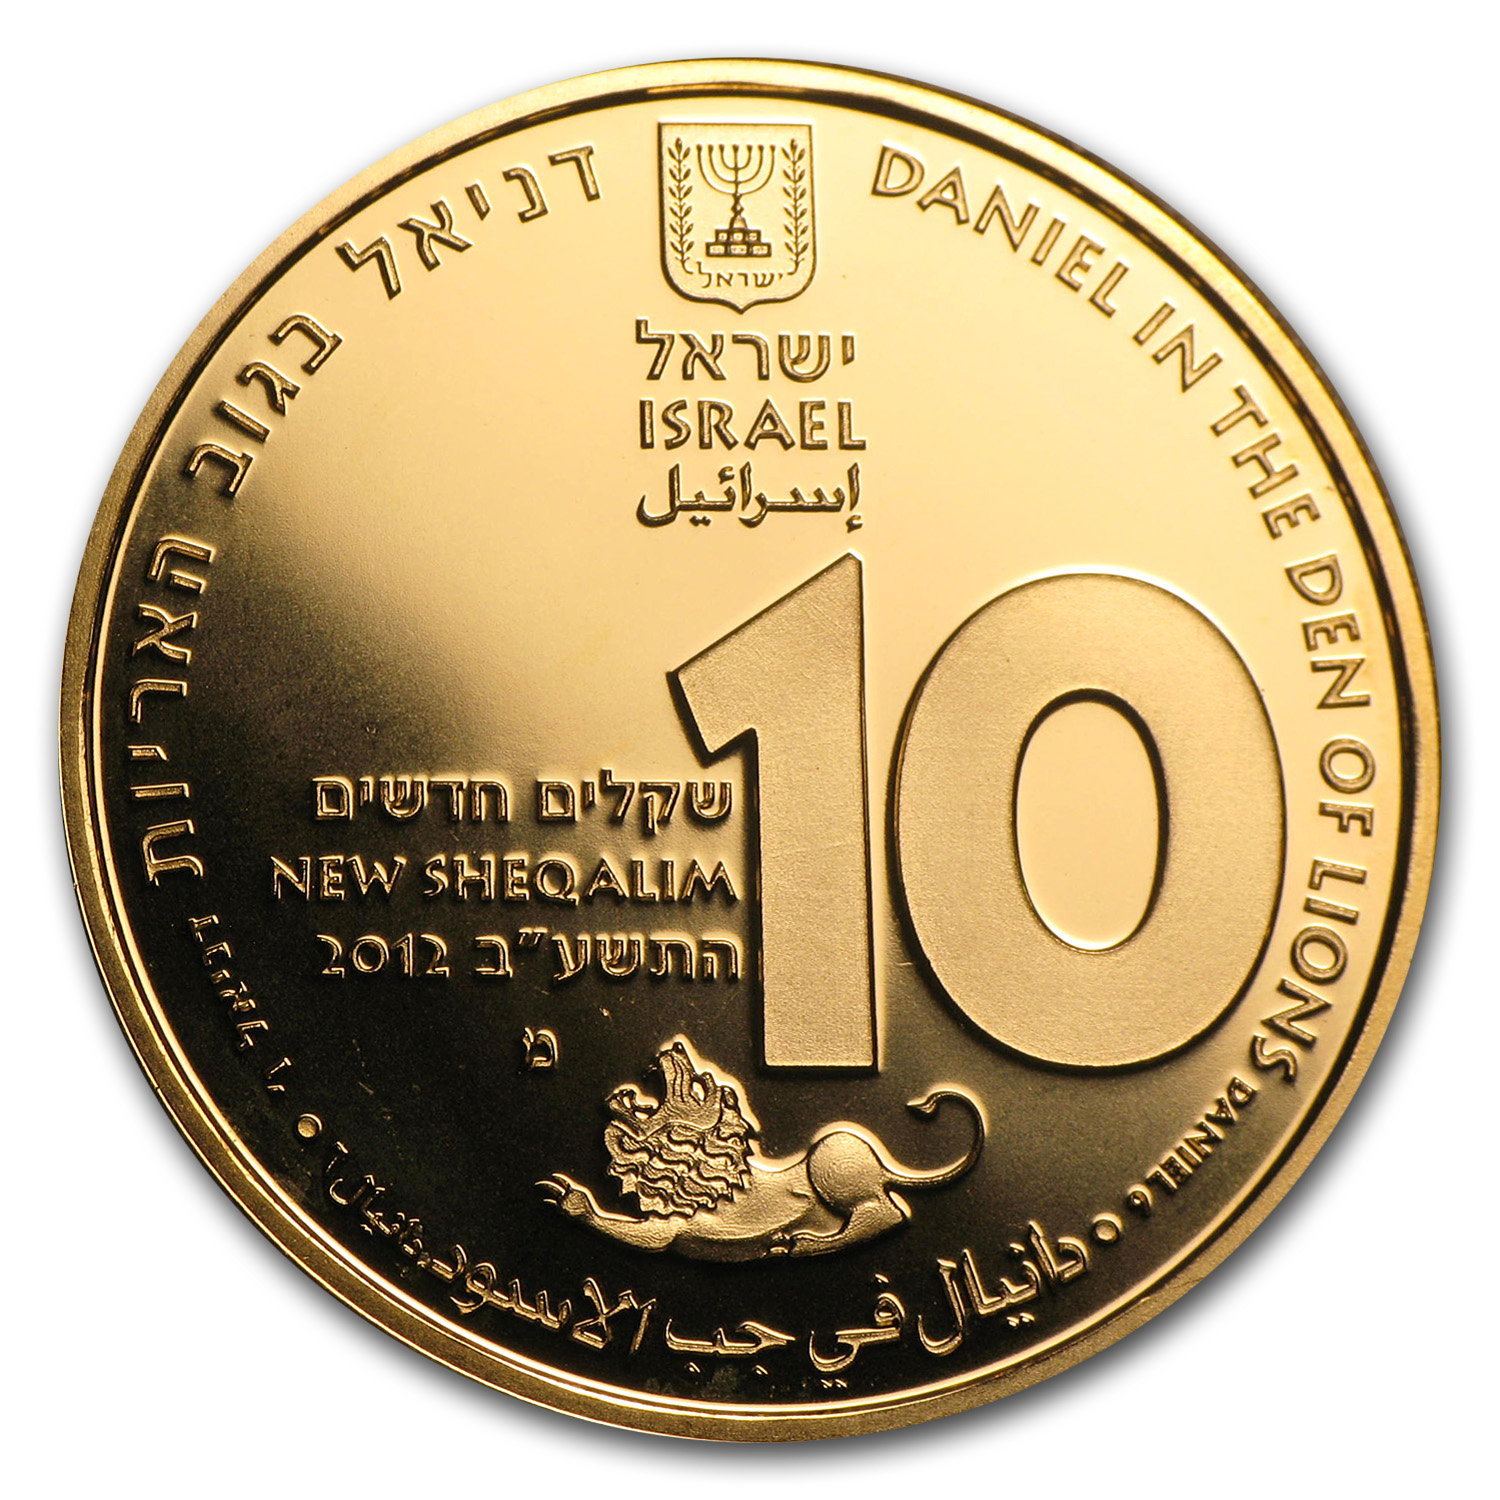 2012 Israel Daniel in the Lion's Den 1/2 oz Proof Gold Coin